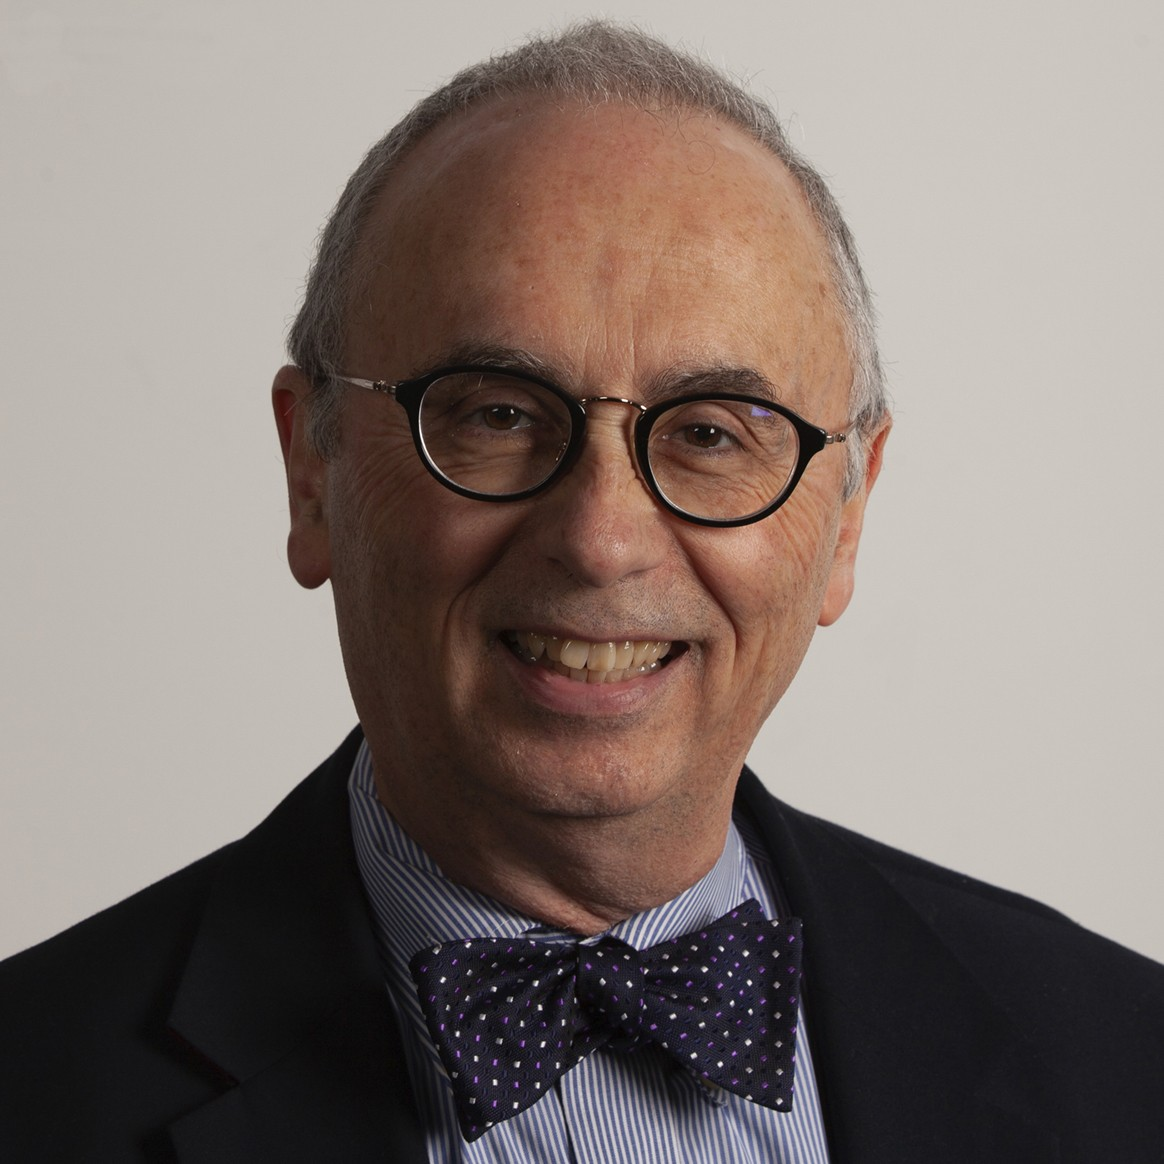 Penn State Professor and director of the School of Music David Frego's head shot.